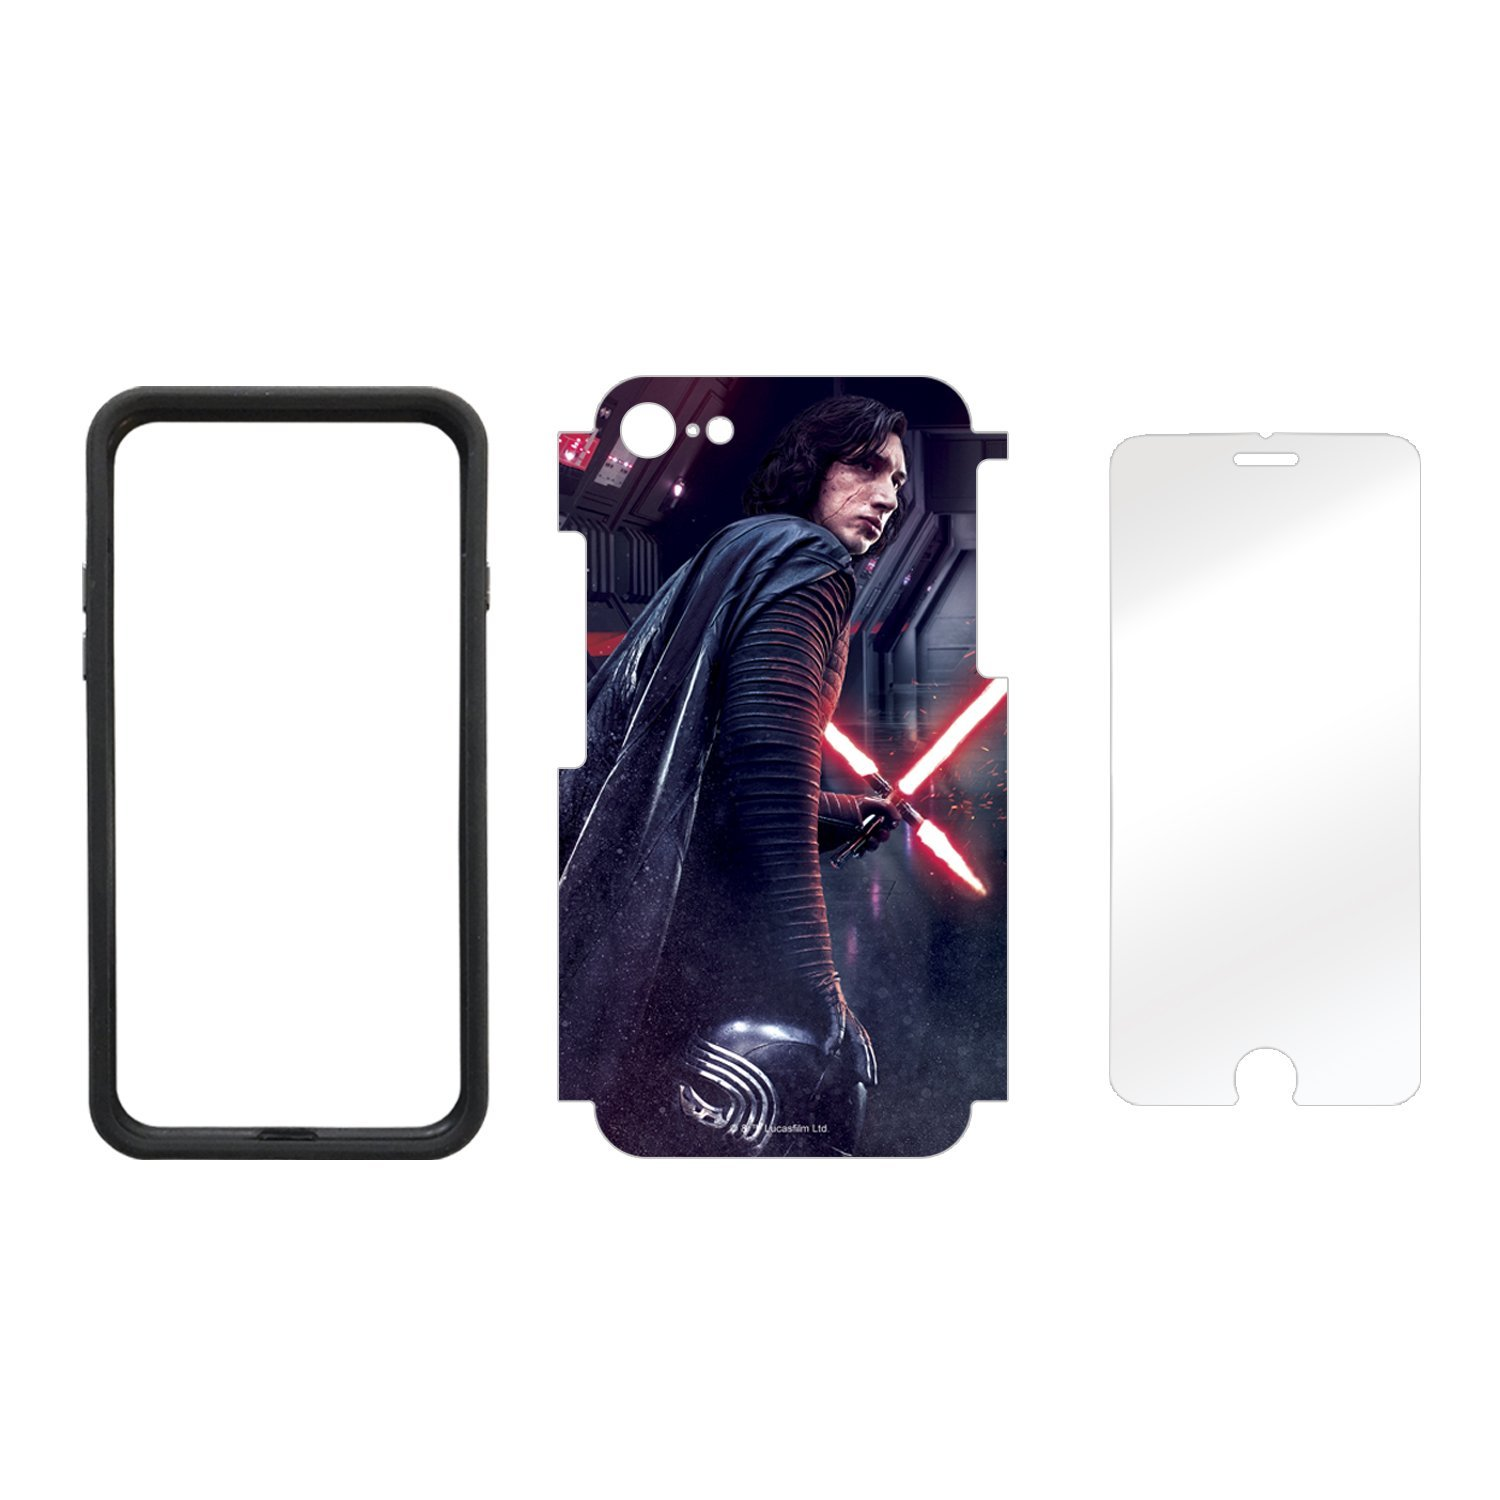 TLJ Battle-Ready Kylo Ren iPhone 7 & 8 Wrap Kit 2